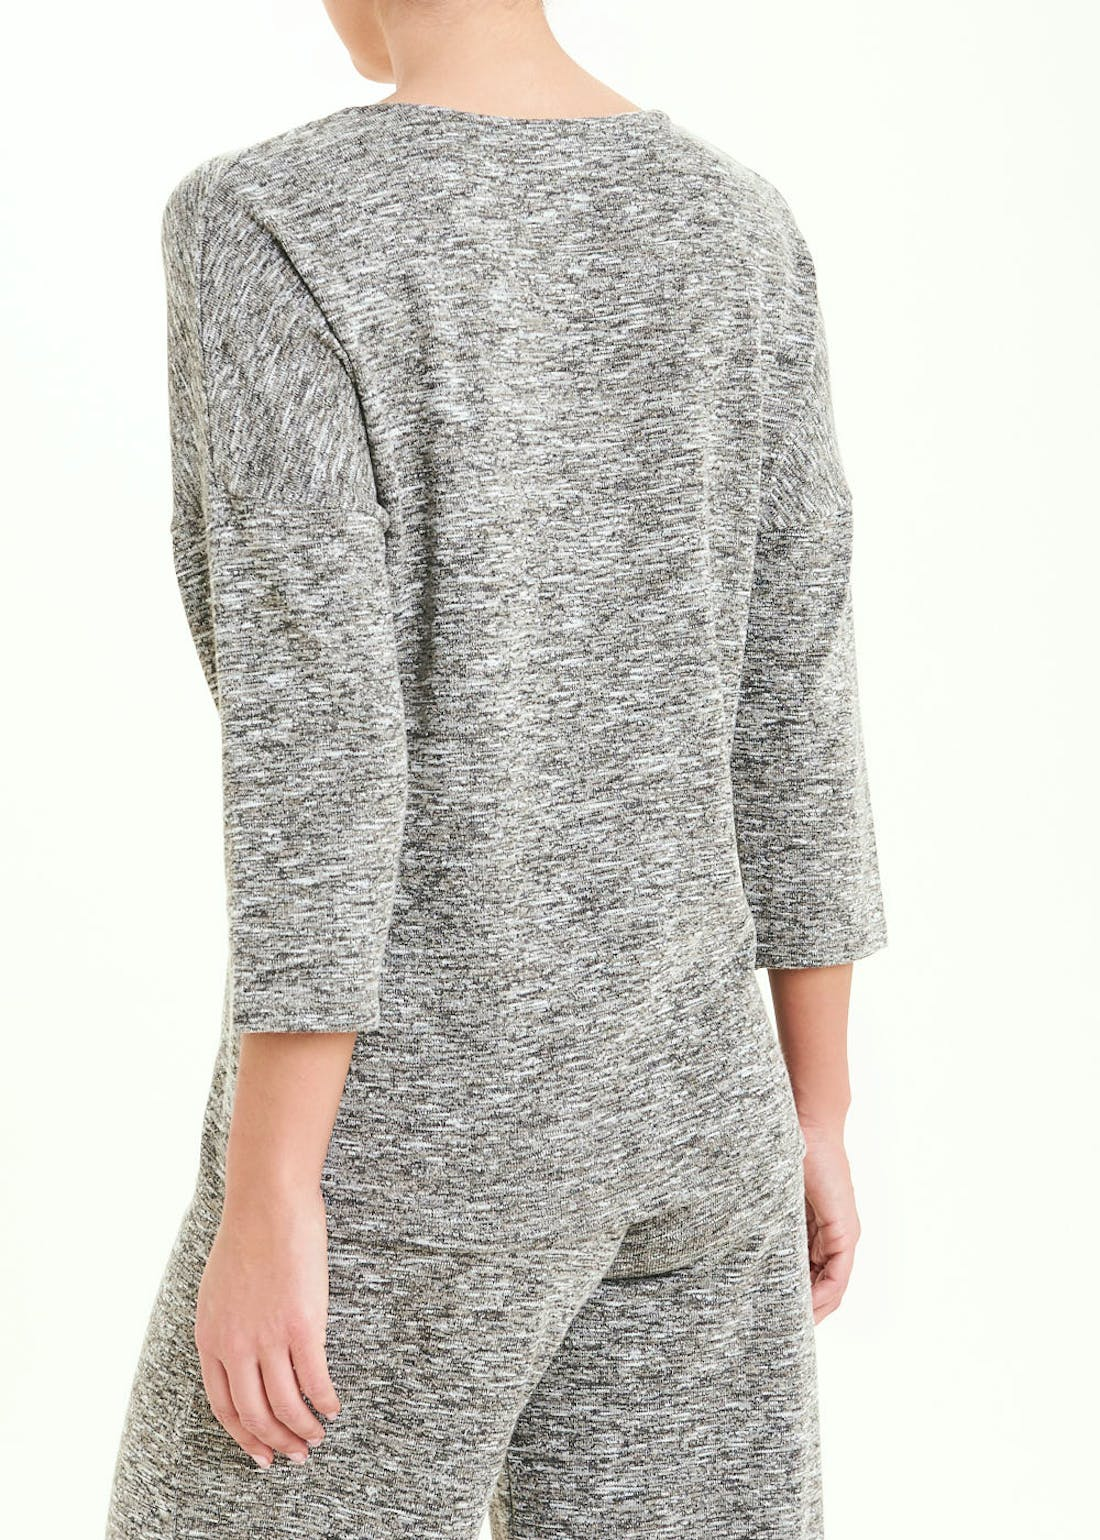 3/4 Sleeve Space Dye Ring Front Co-Ord Top